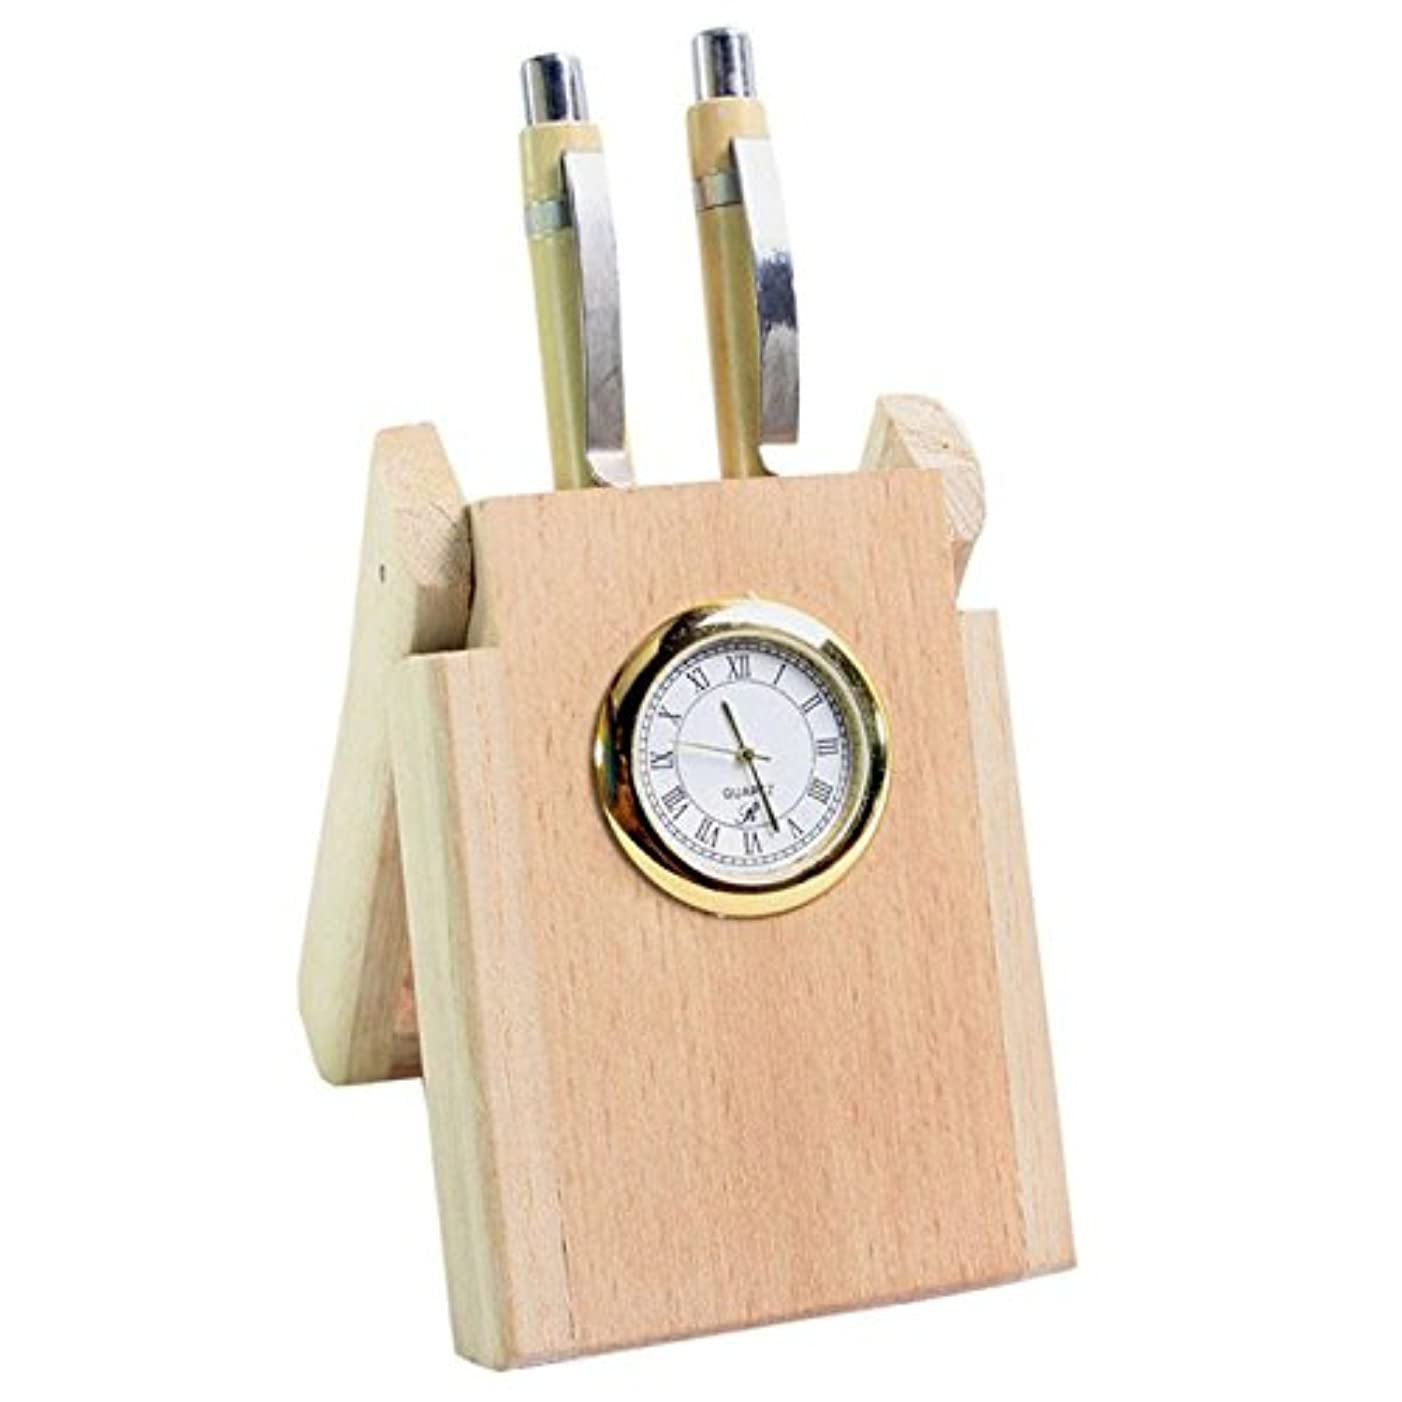 IndiaBigShop Handmade Wooden Watch Cum 2 Pen Stand, Perfect For Office and Home Desk, Office Pen Stand 5.5 Inch